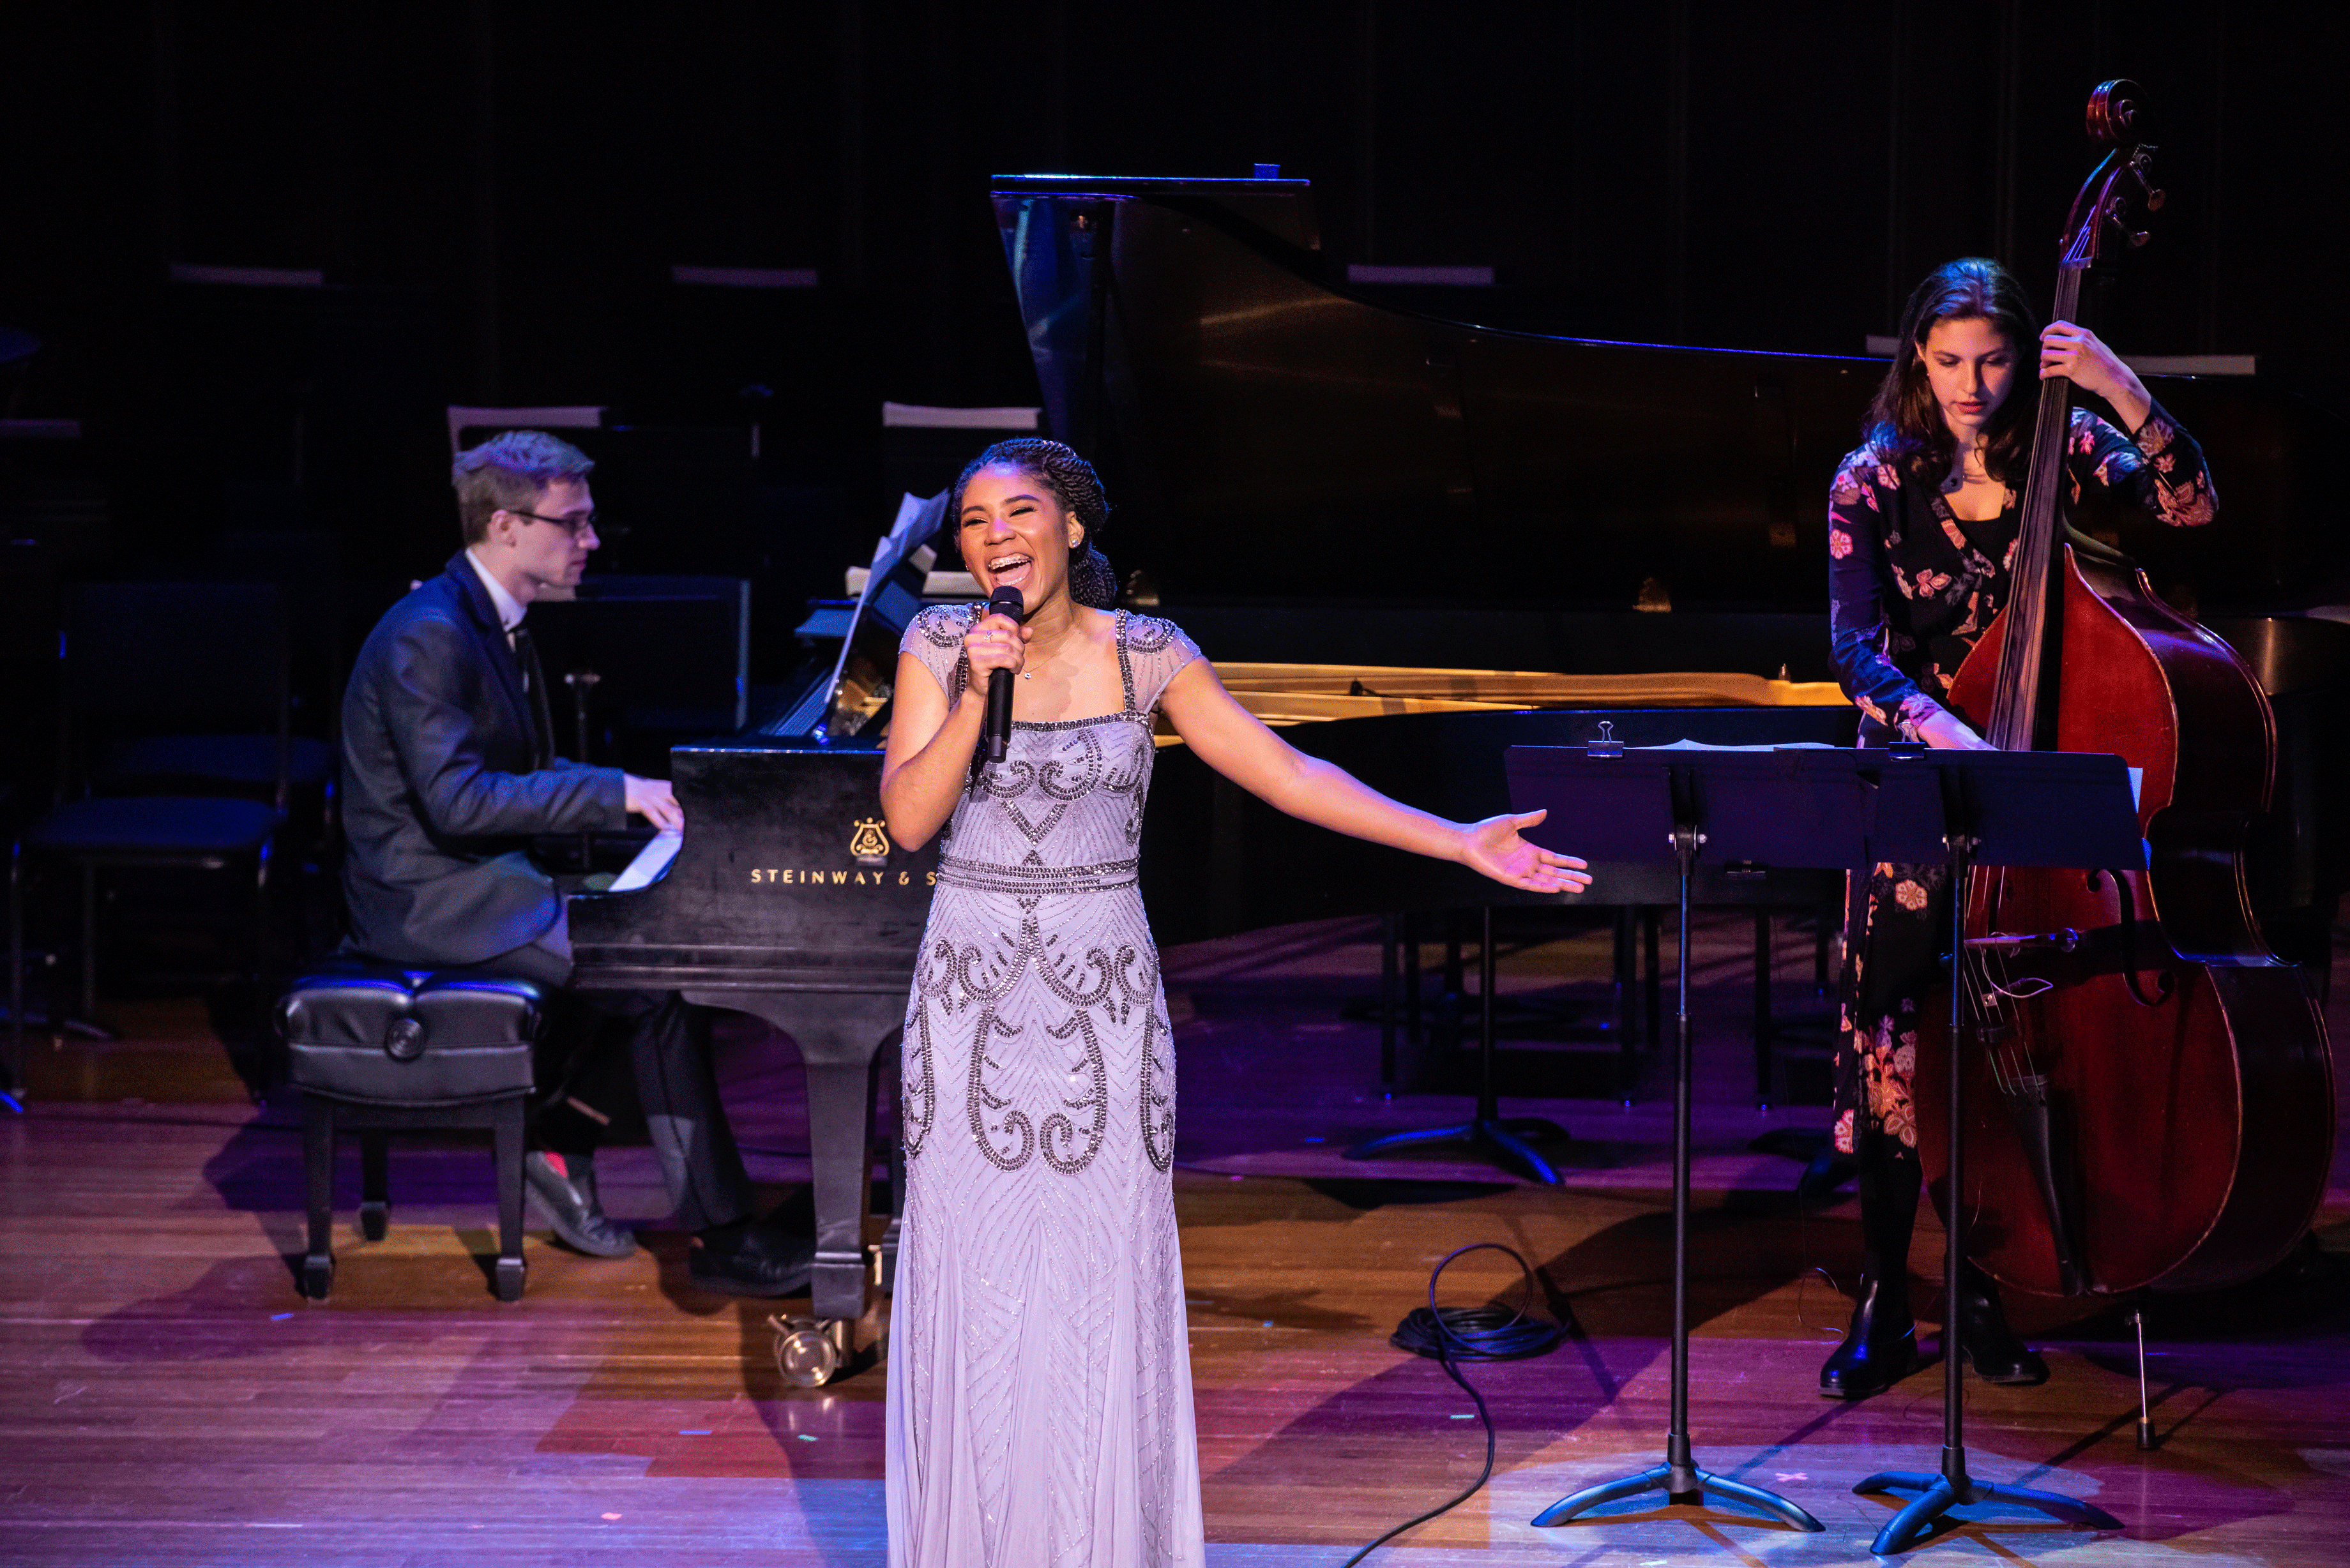 Darynn Dean sings with a pianist and bassist